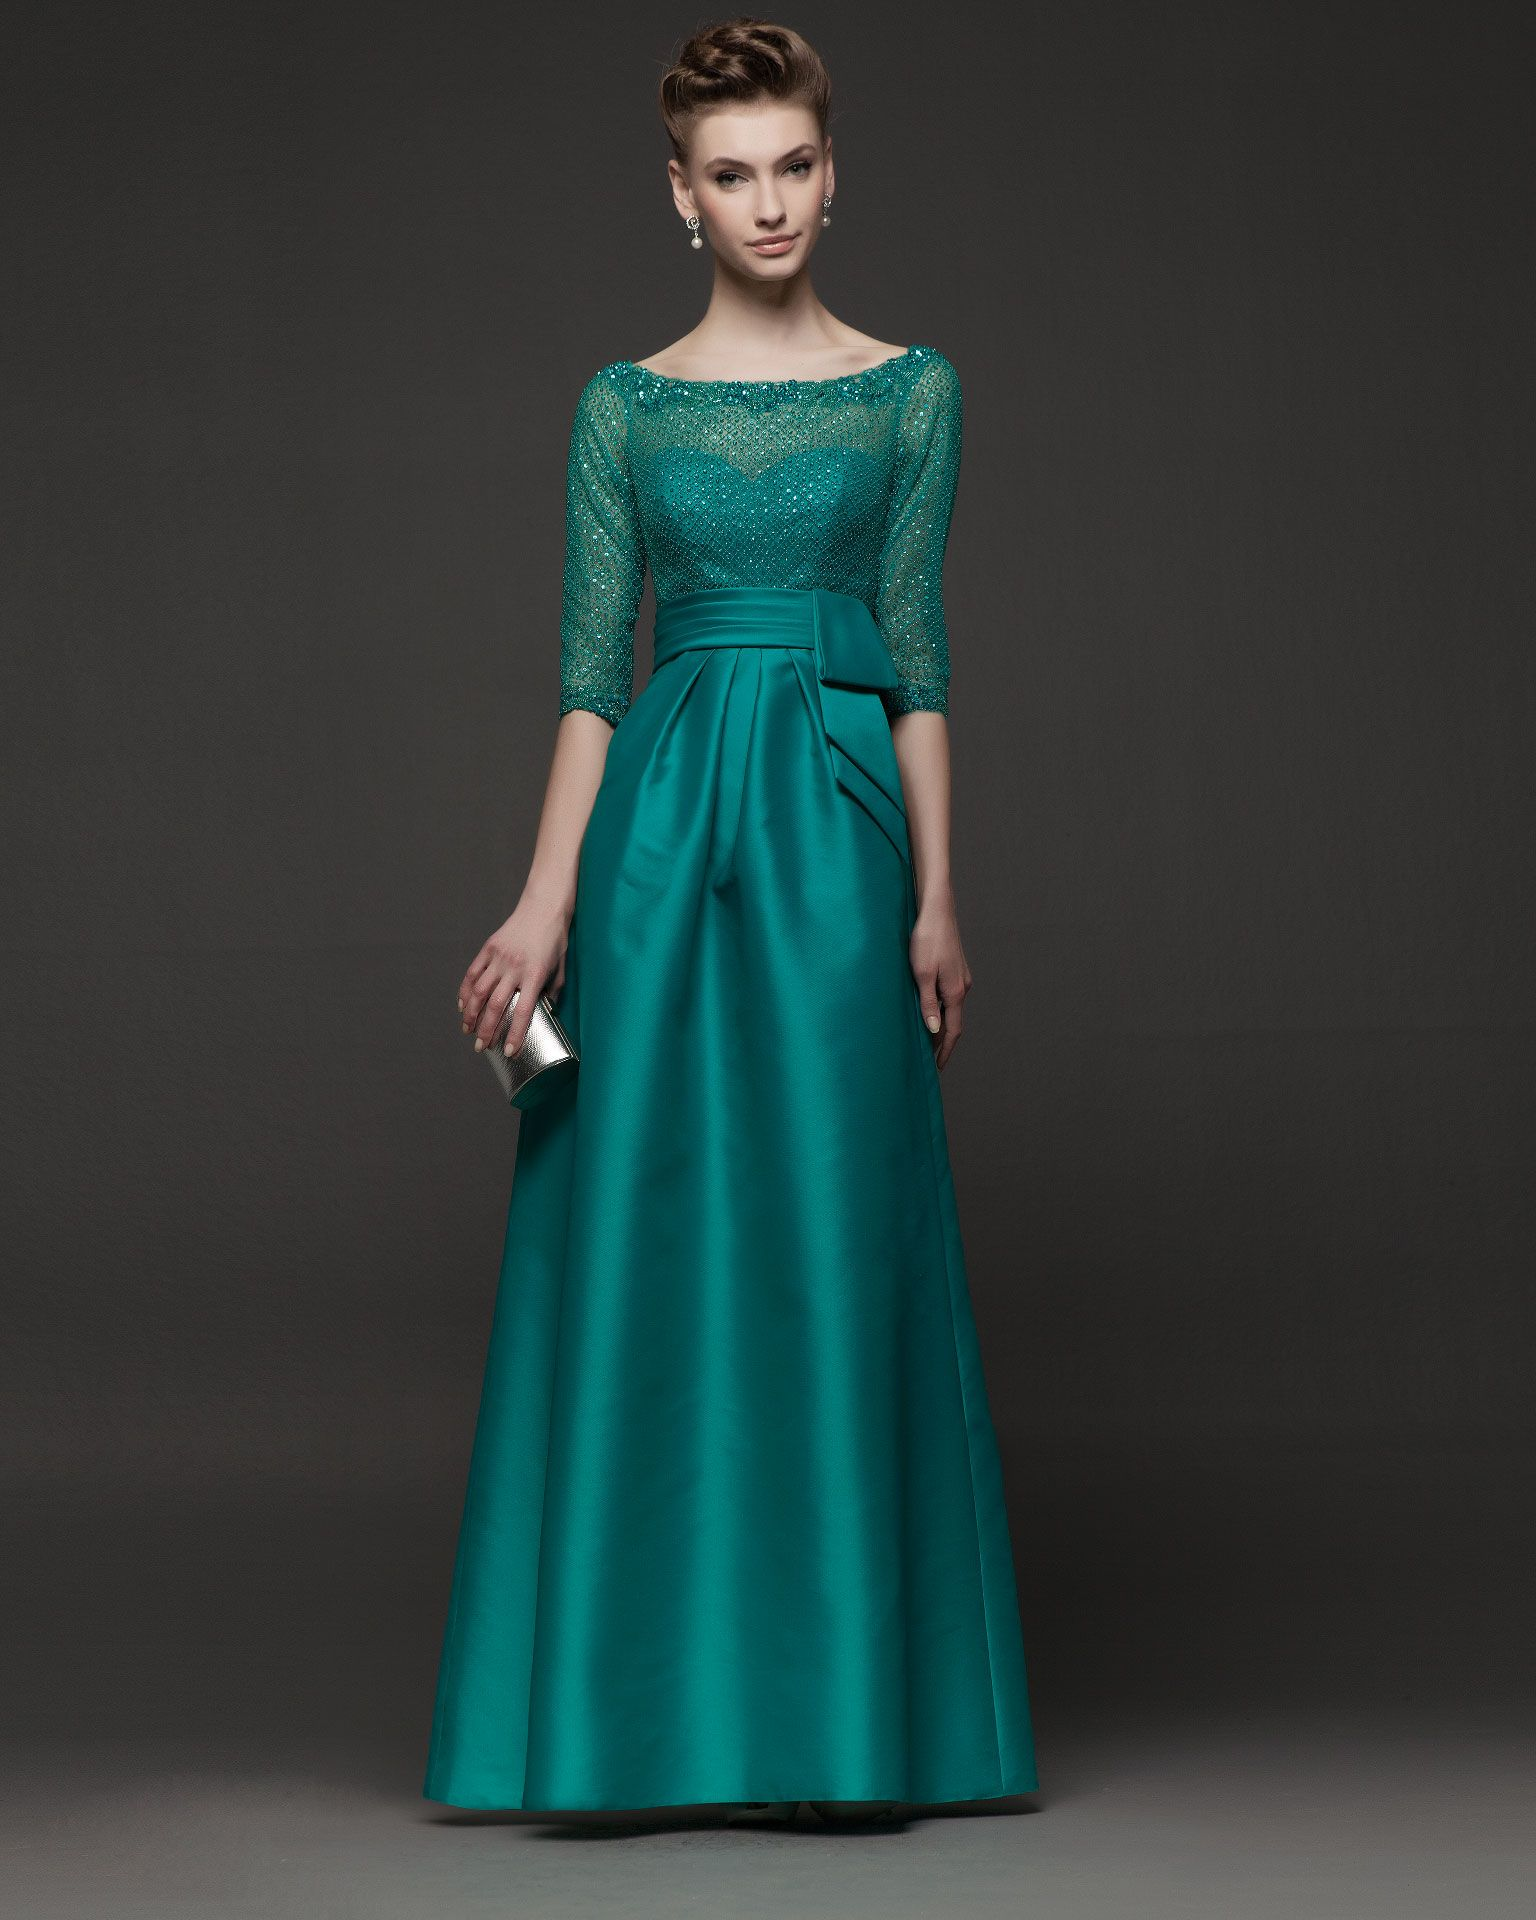 Good bridesmaid of maid of honor dress! A little shorter maybe. For ...